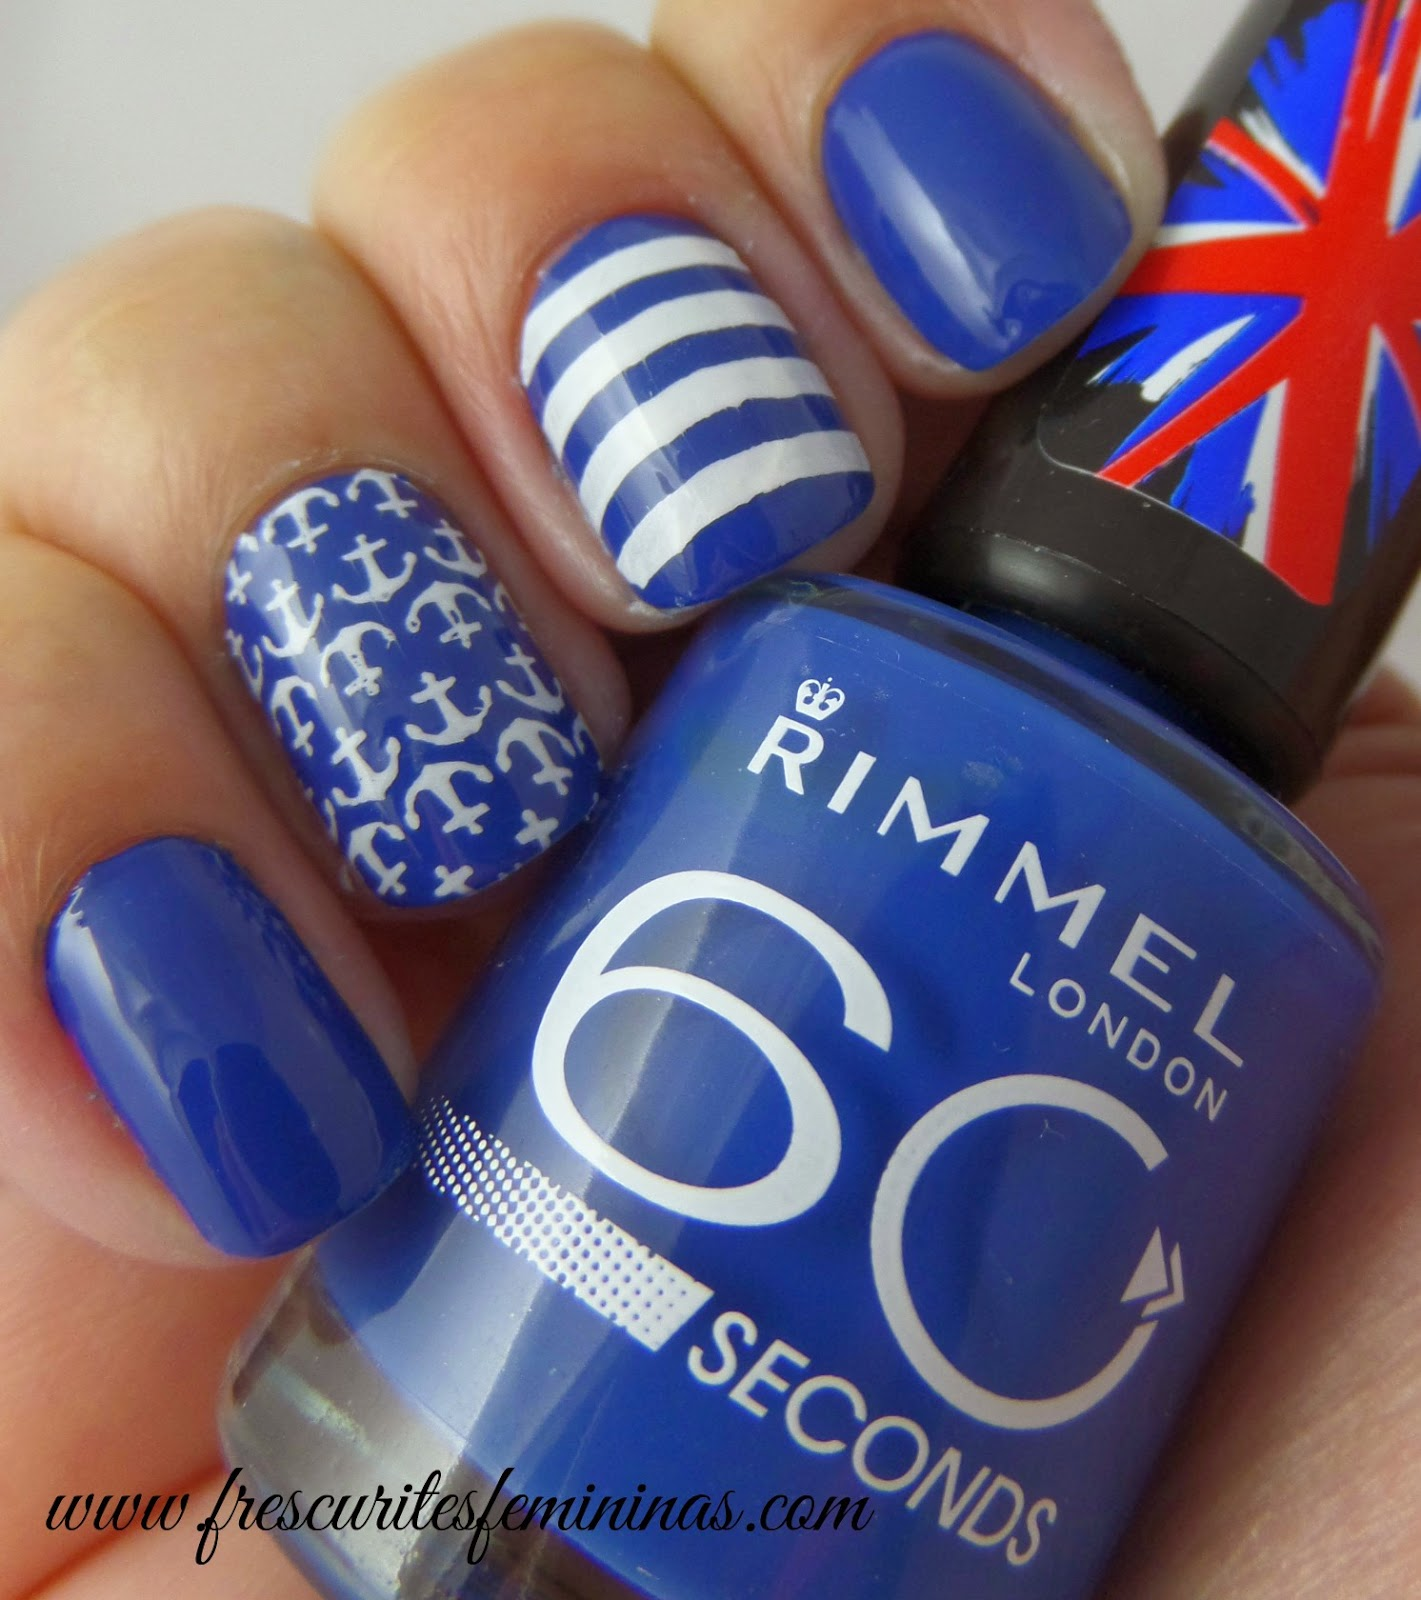 Rimmel, London, 60, seconds, blue, my, mind, frescurites, femininas, blue, nails, esmalte, polish, nail, stamp, carimbo, unhas